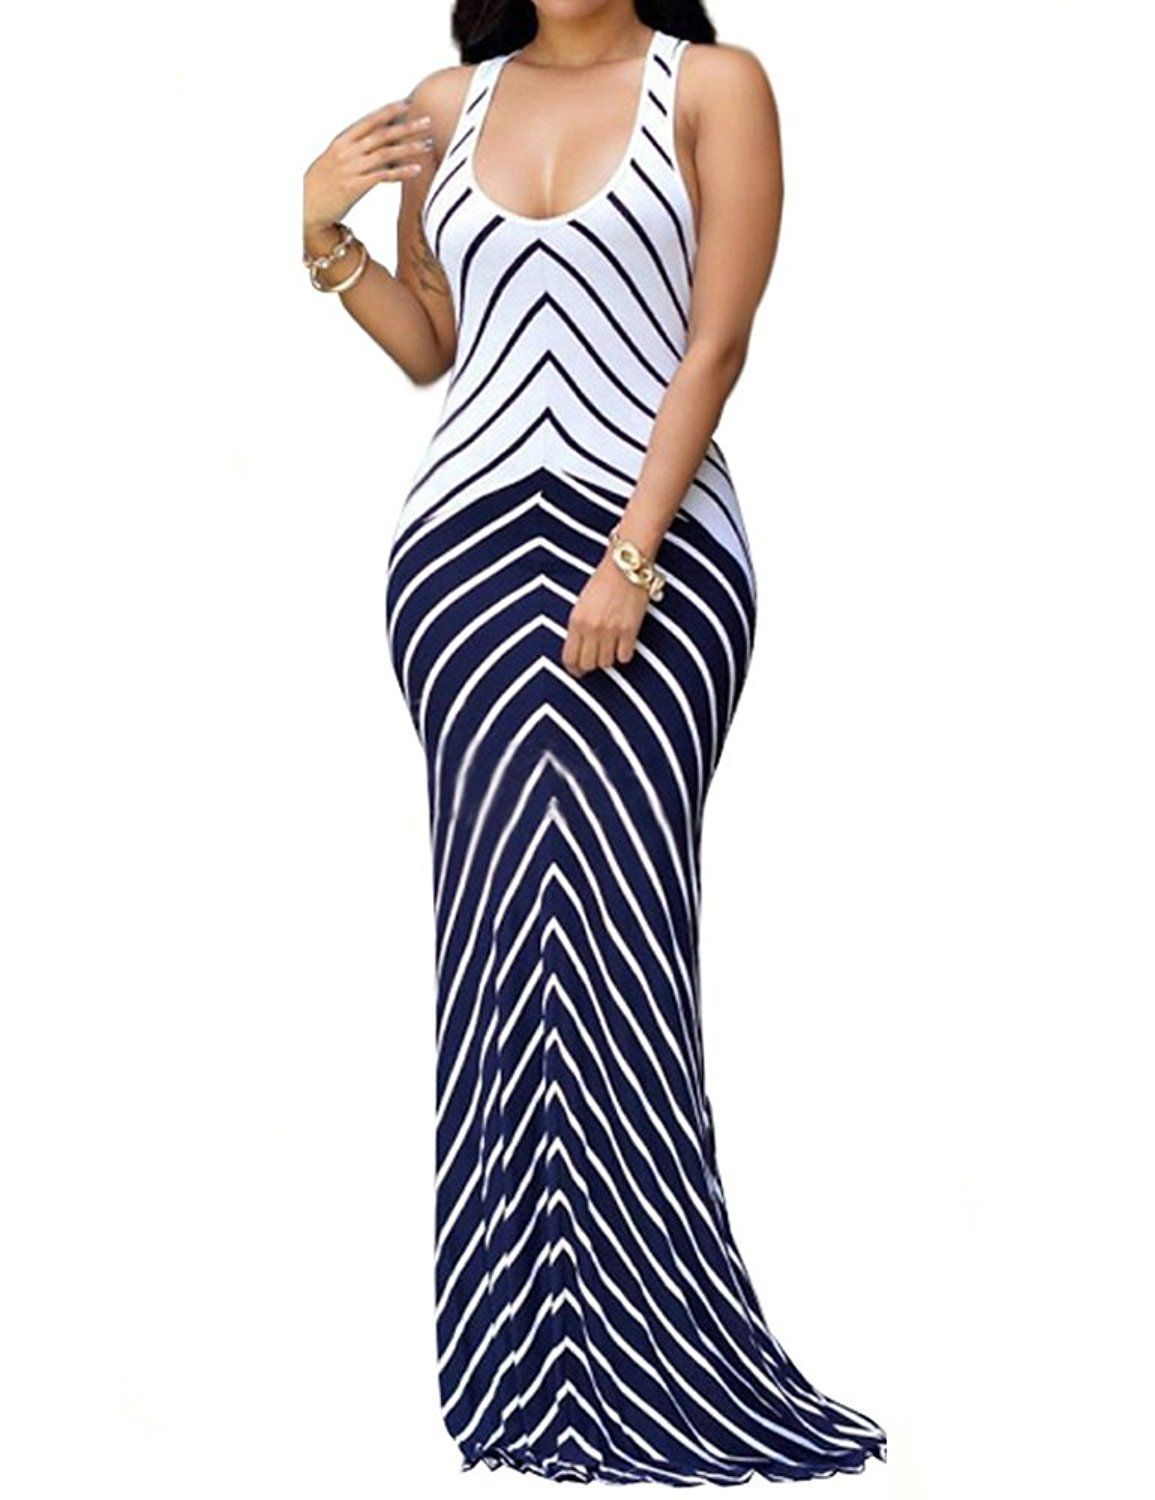 4c34d0c4ea6 shekiss Women s Casual Sexy Summer Sleeveless Striped Bodycon Bandage Club  Long Maxi Dress with Plus Size Floor Length at Amazon Women s Clothing  store